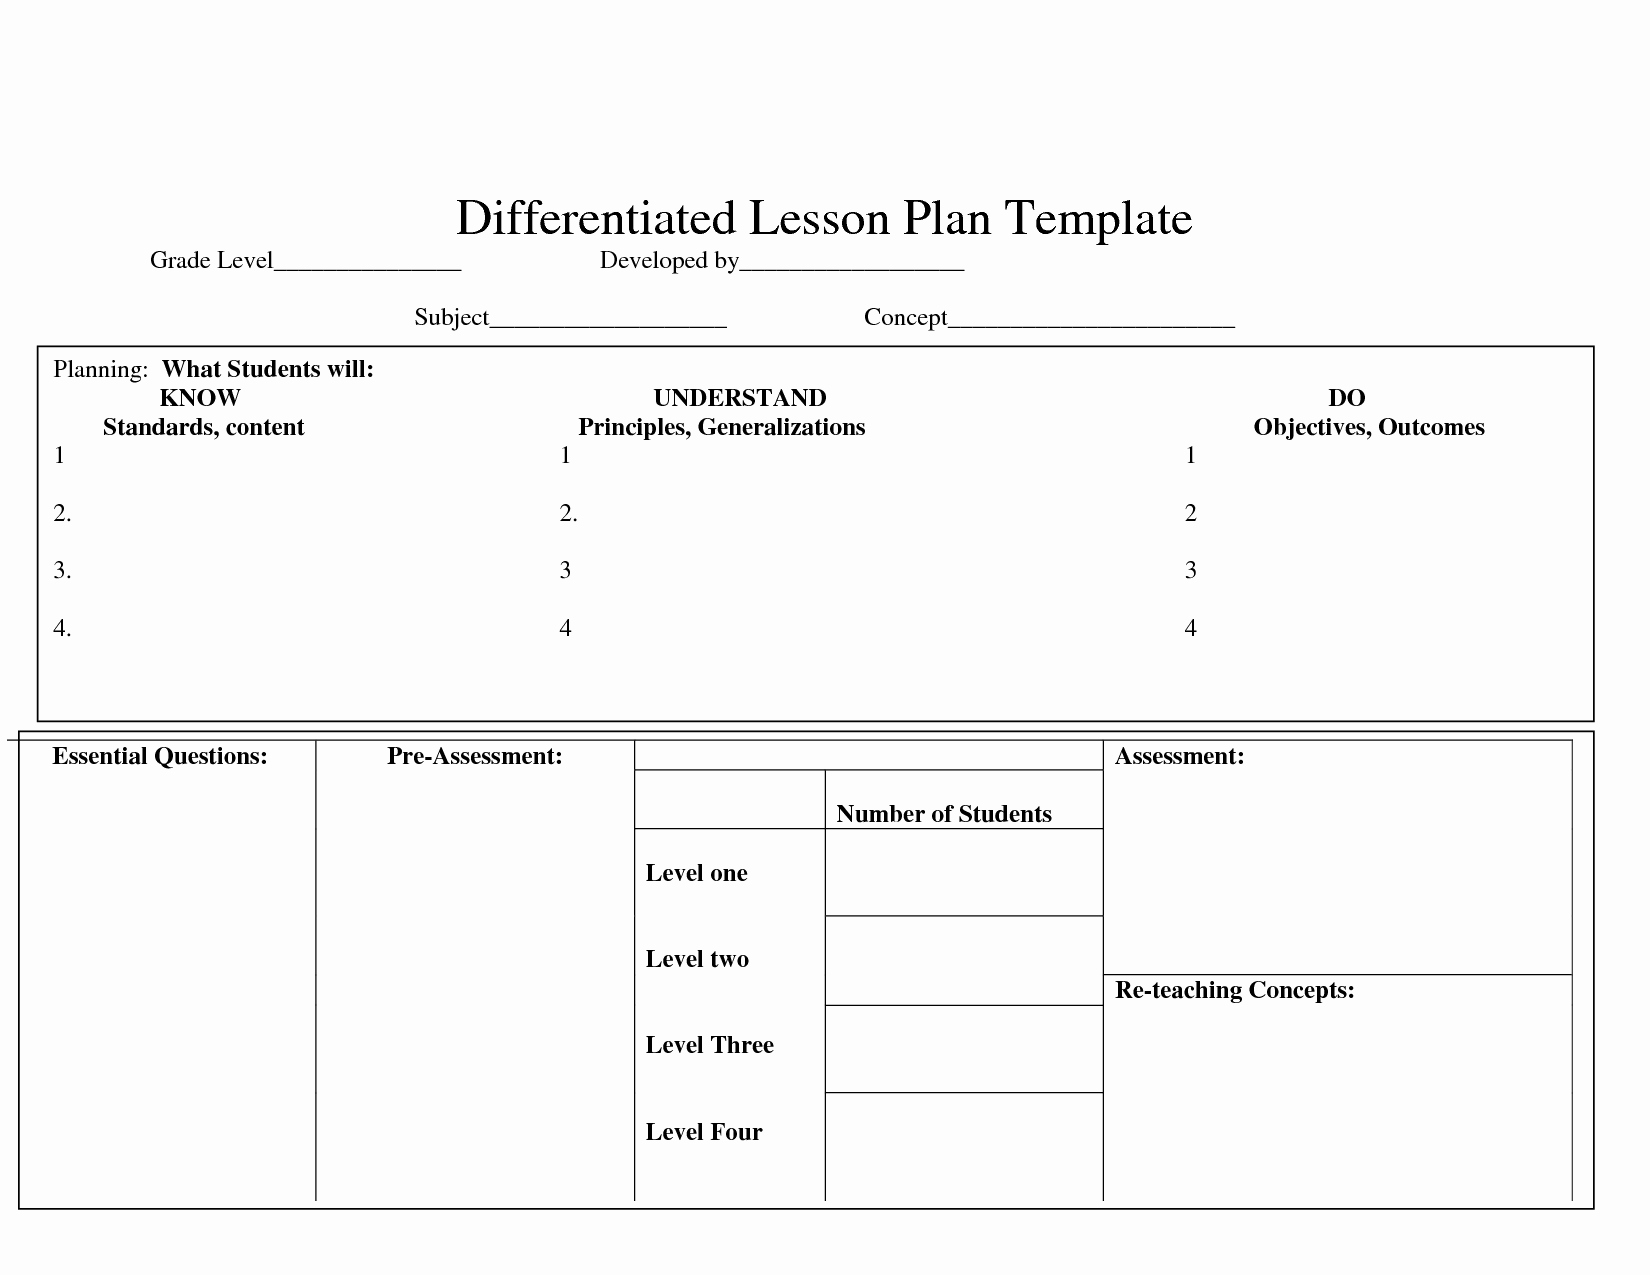 Differentiated Lesson Plan Template New Differentiatedlearning